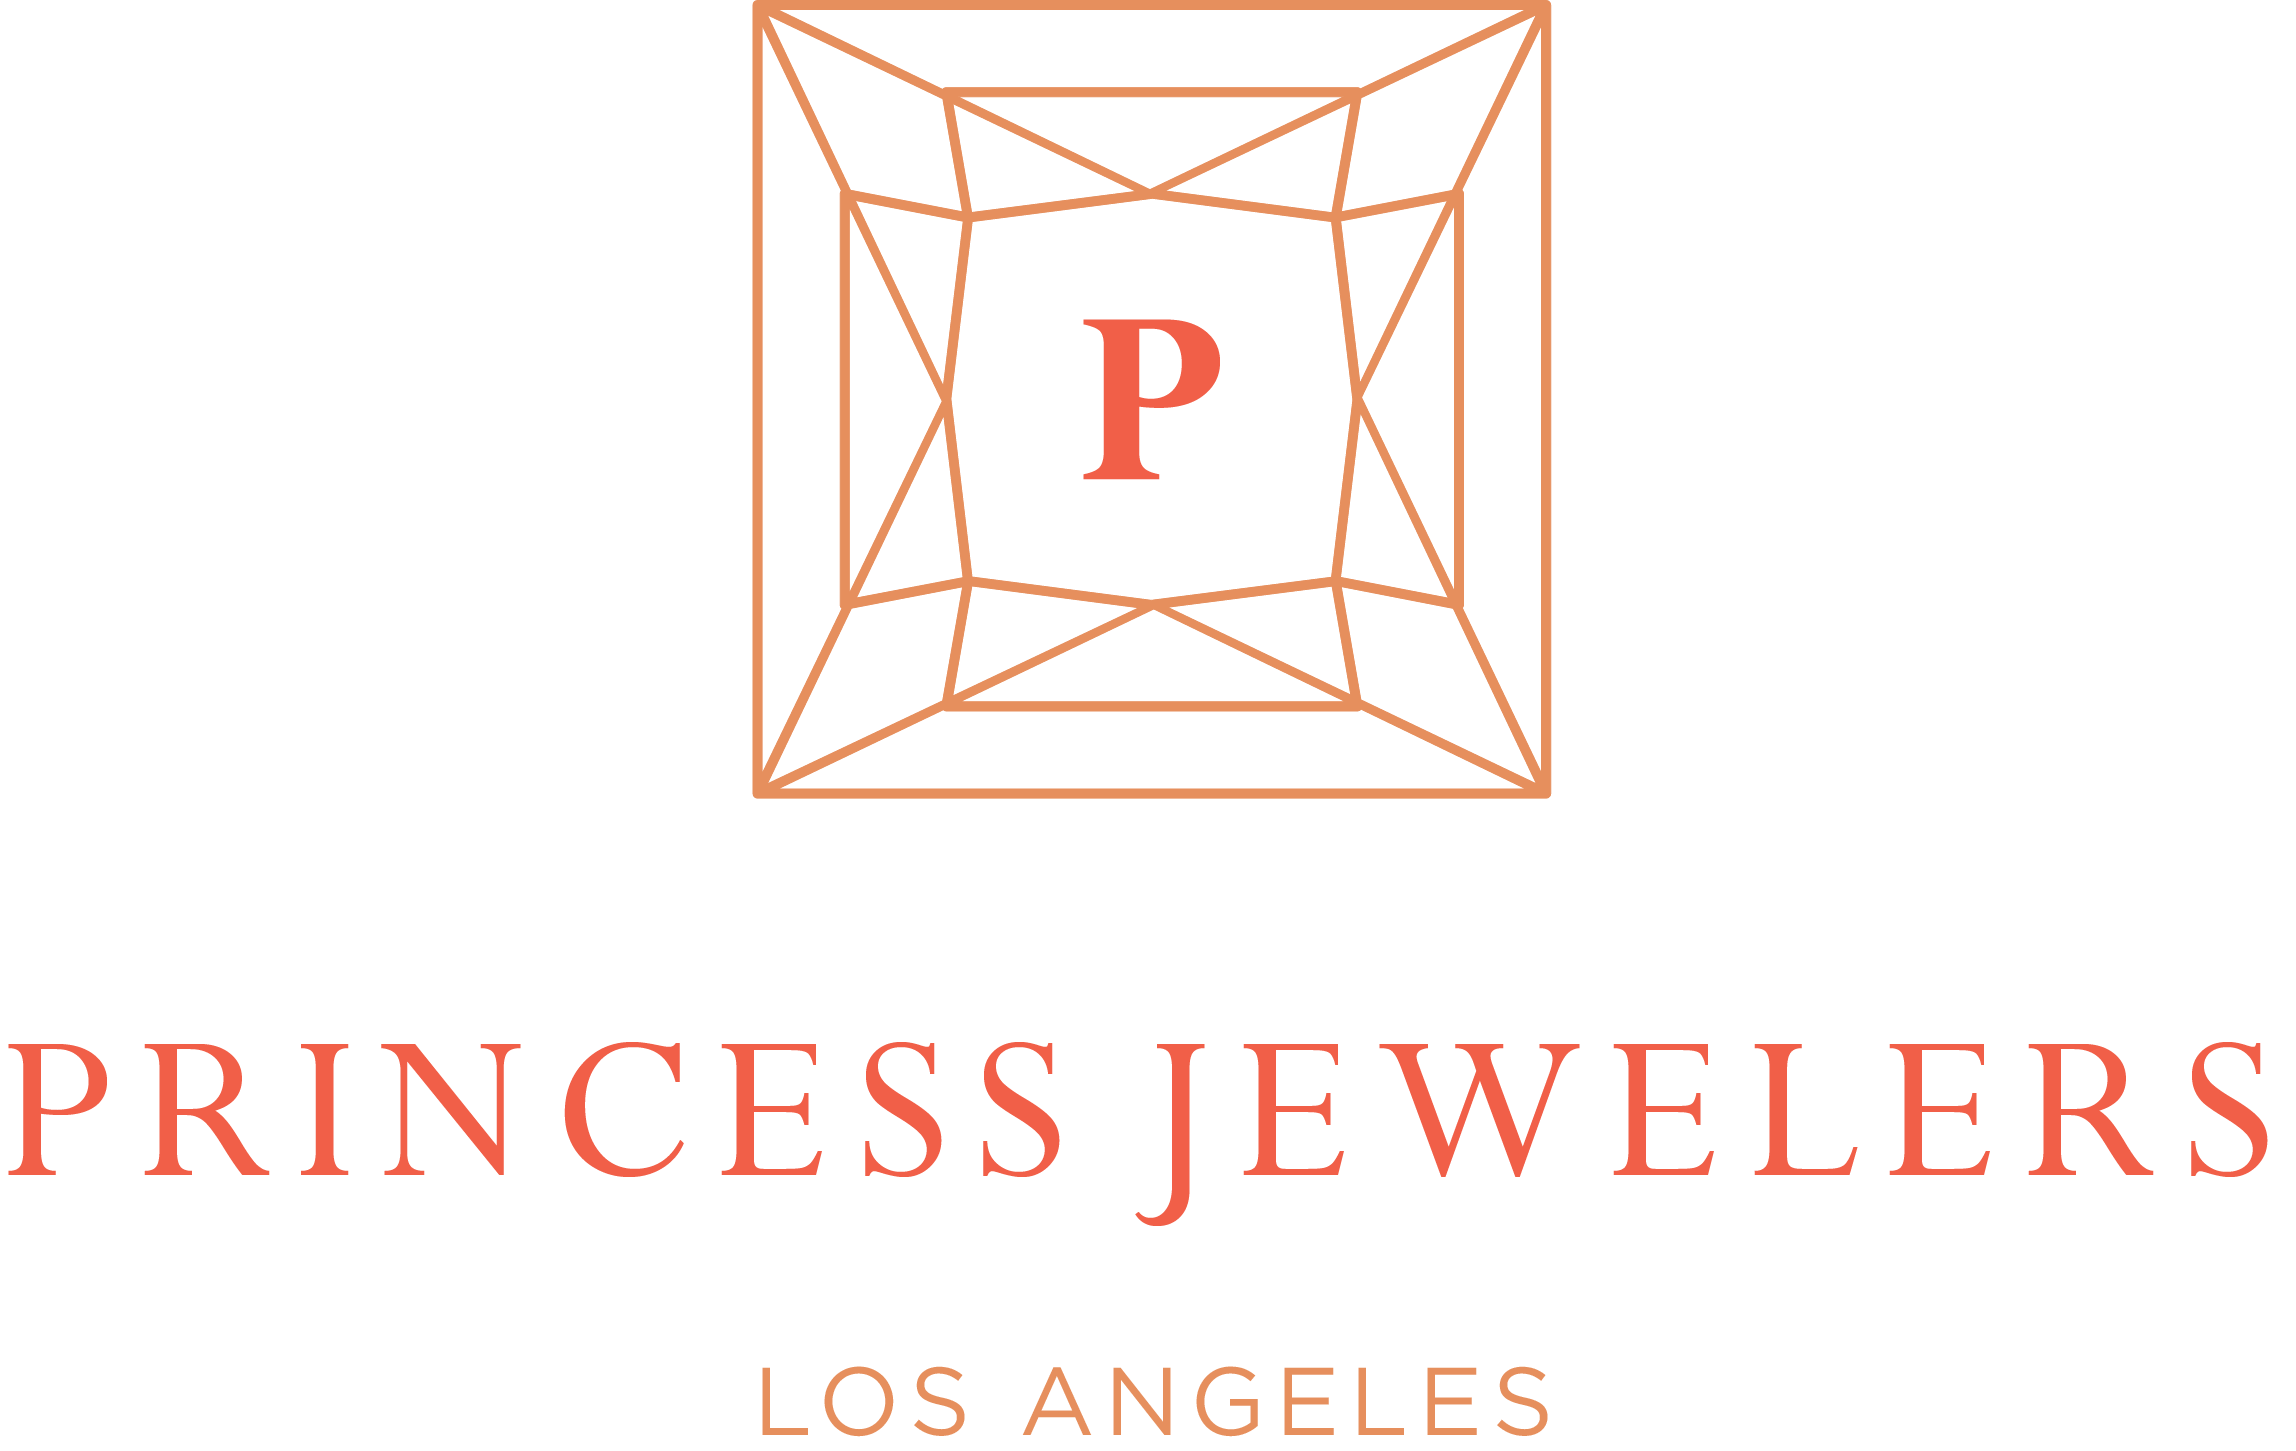 Princess Jewelers Los Angeles